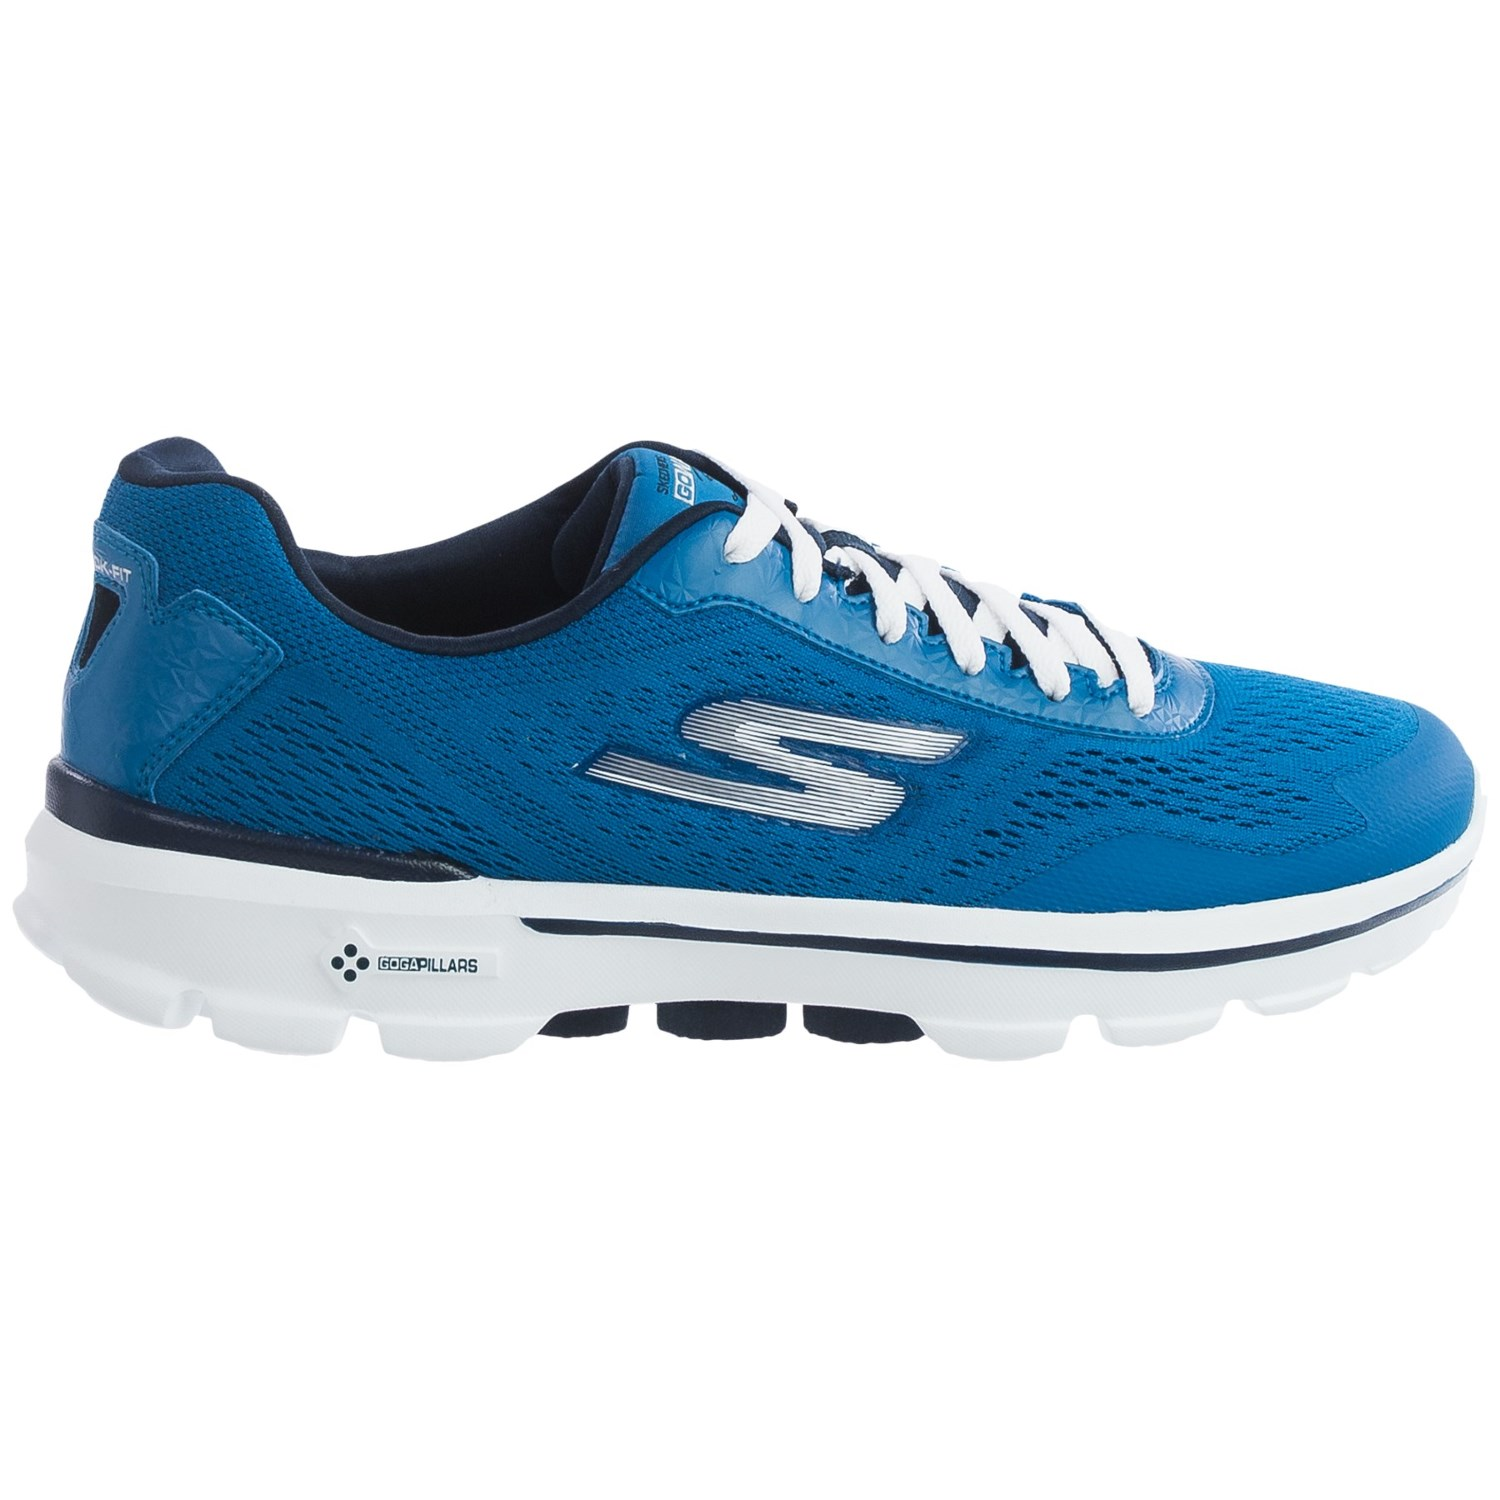 skechers gowalk 3 walking shoes for save 46